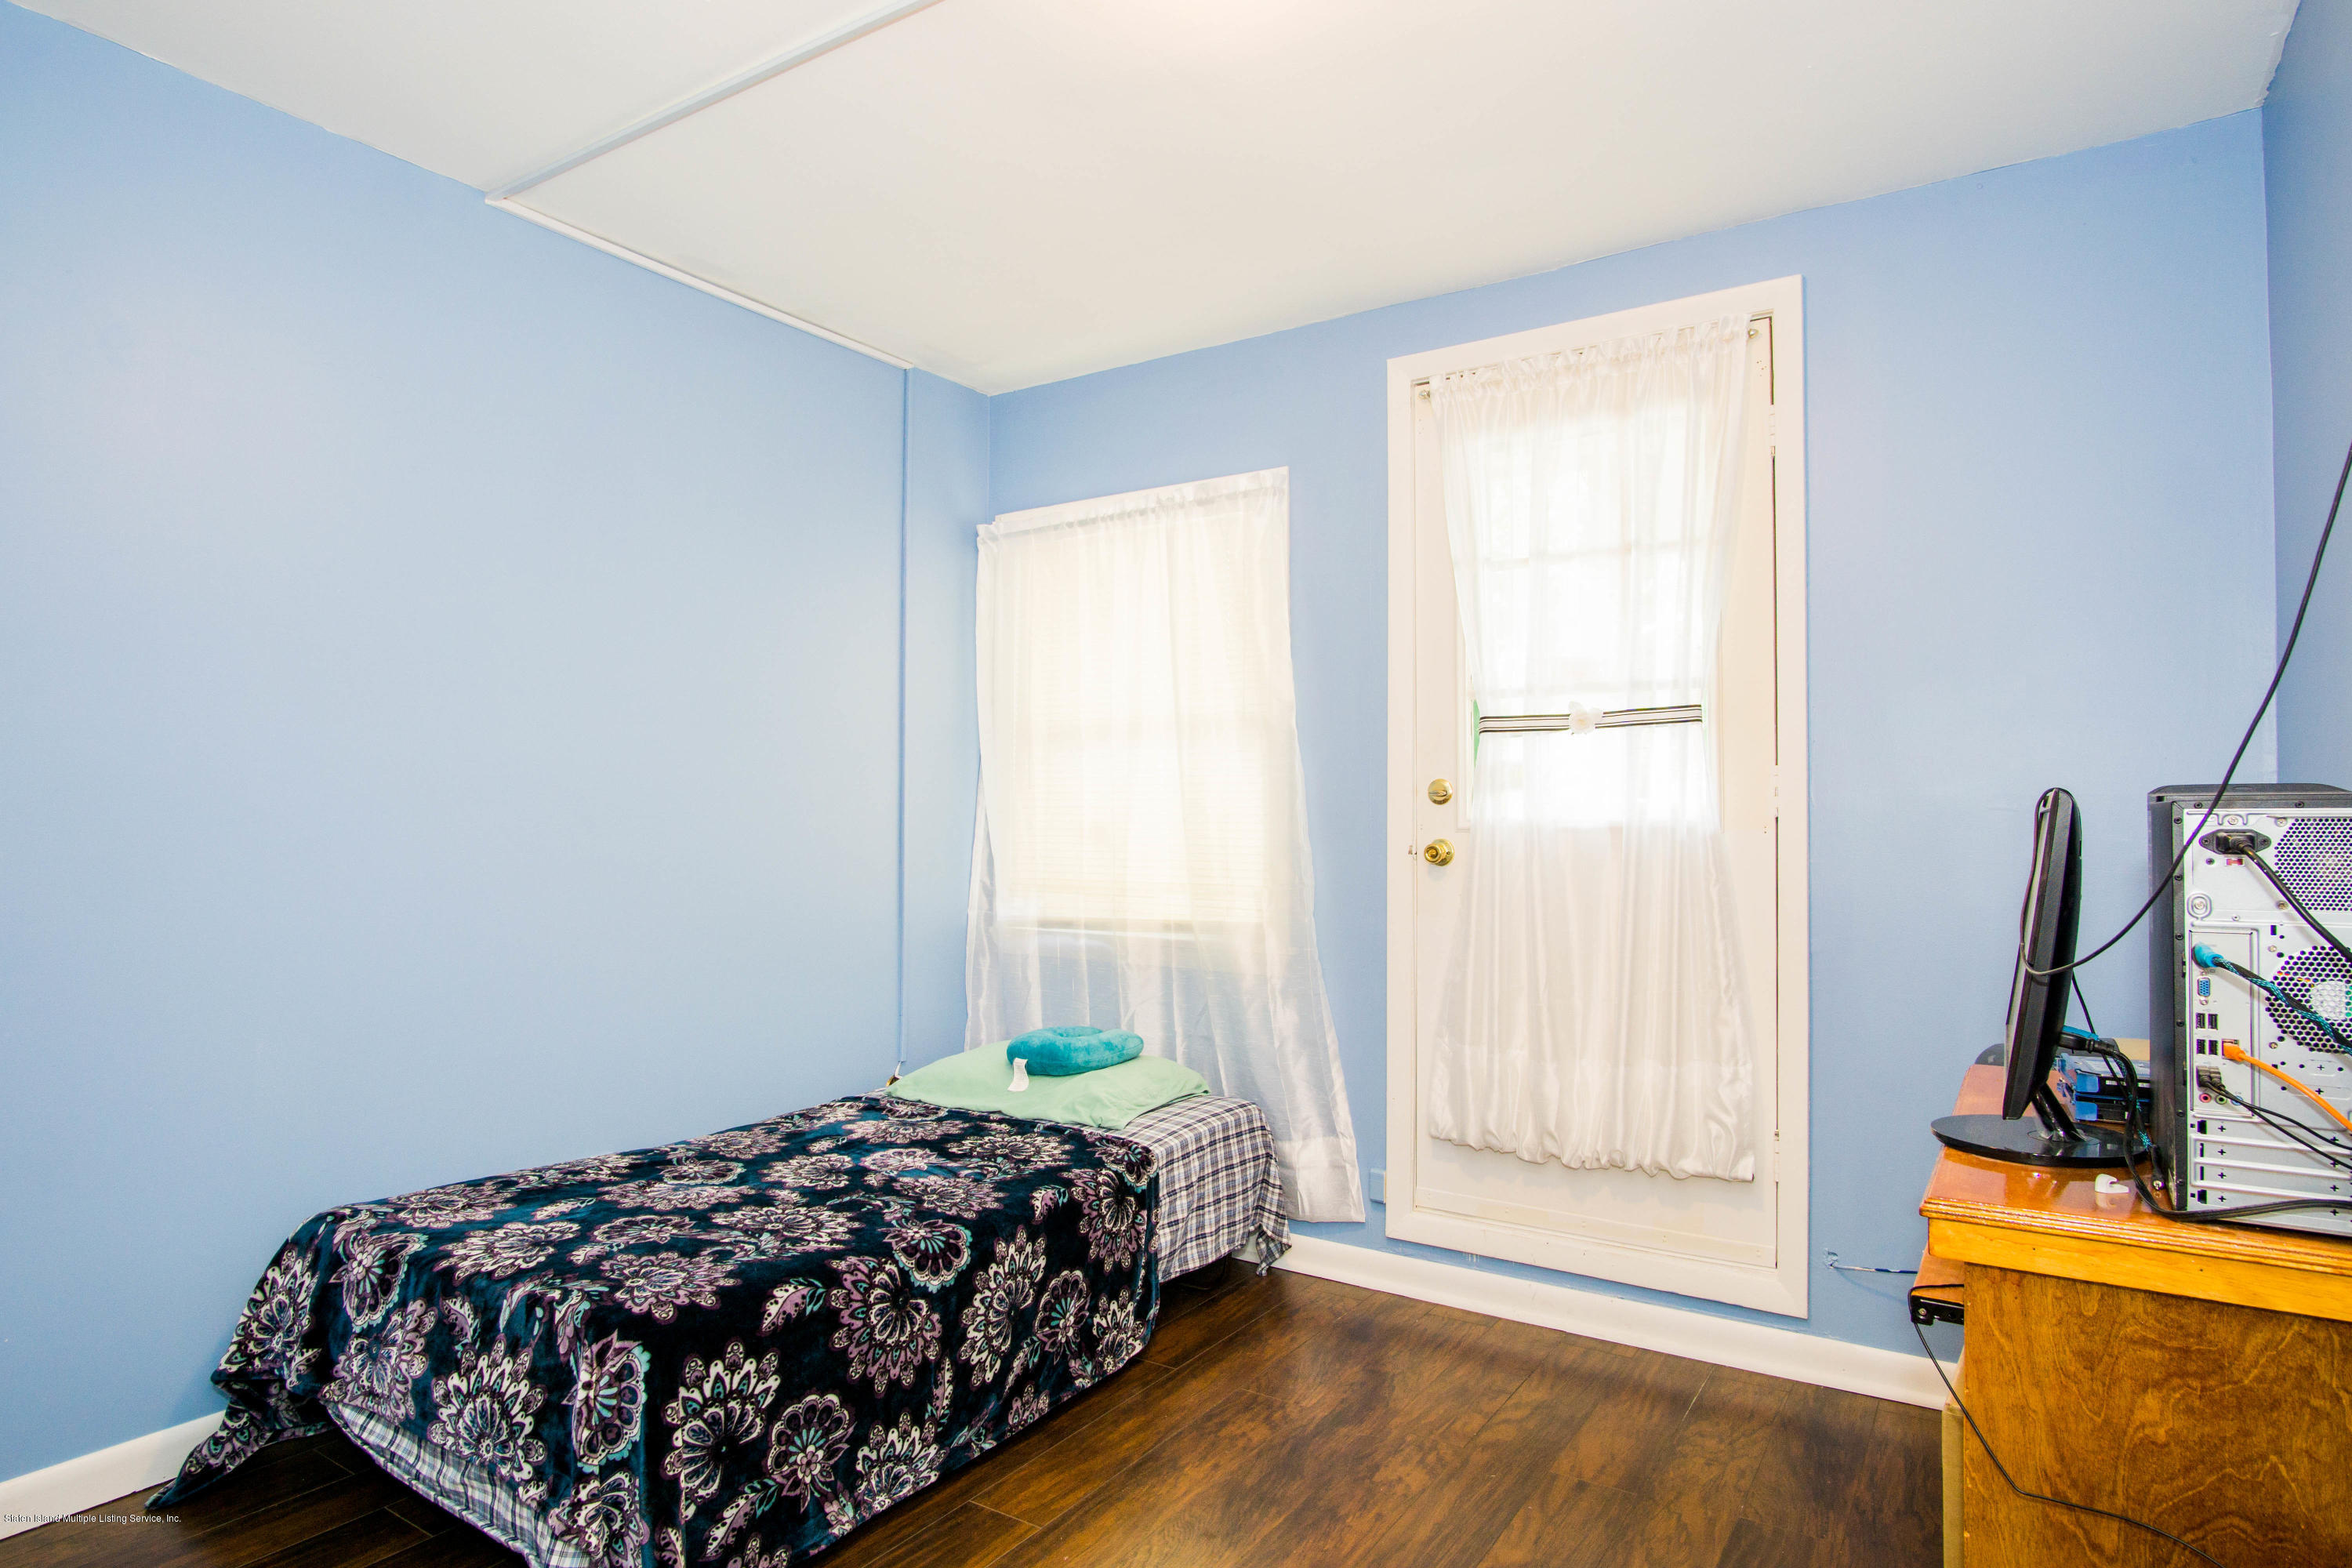 Two Family - Semi-Attached 95 Regis Drive  Staten Island, NY 10314, MLS-1129148-10